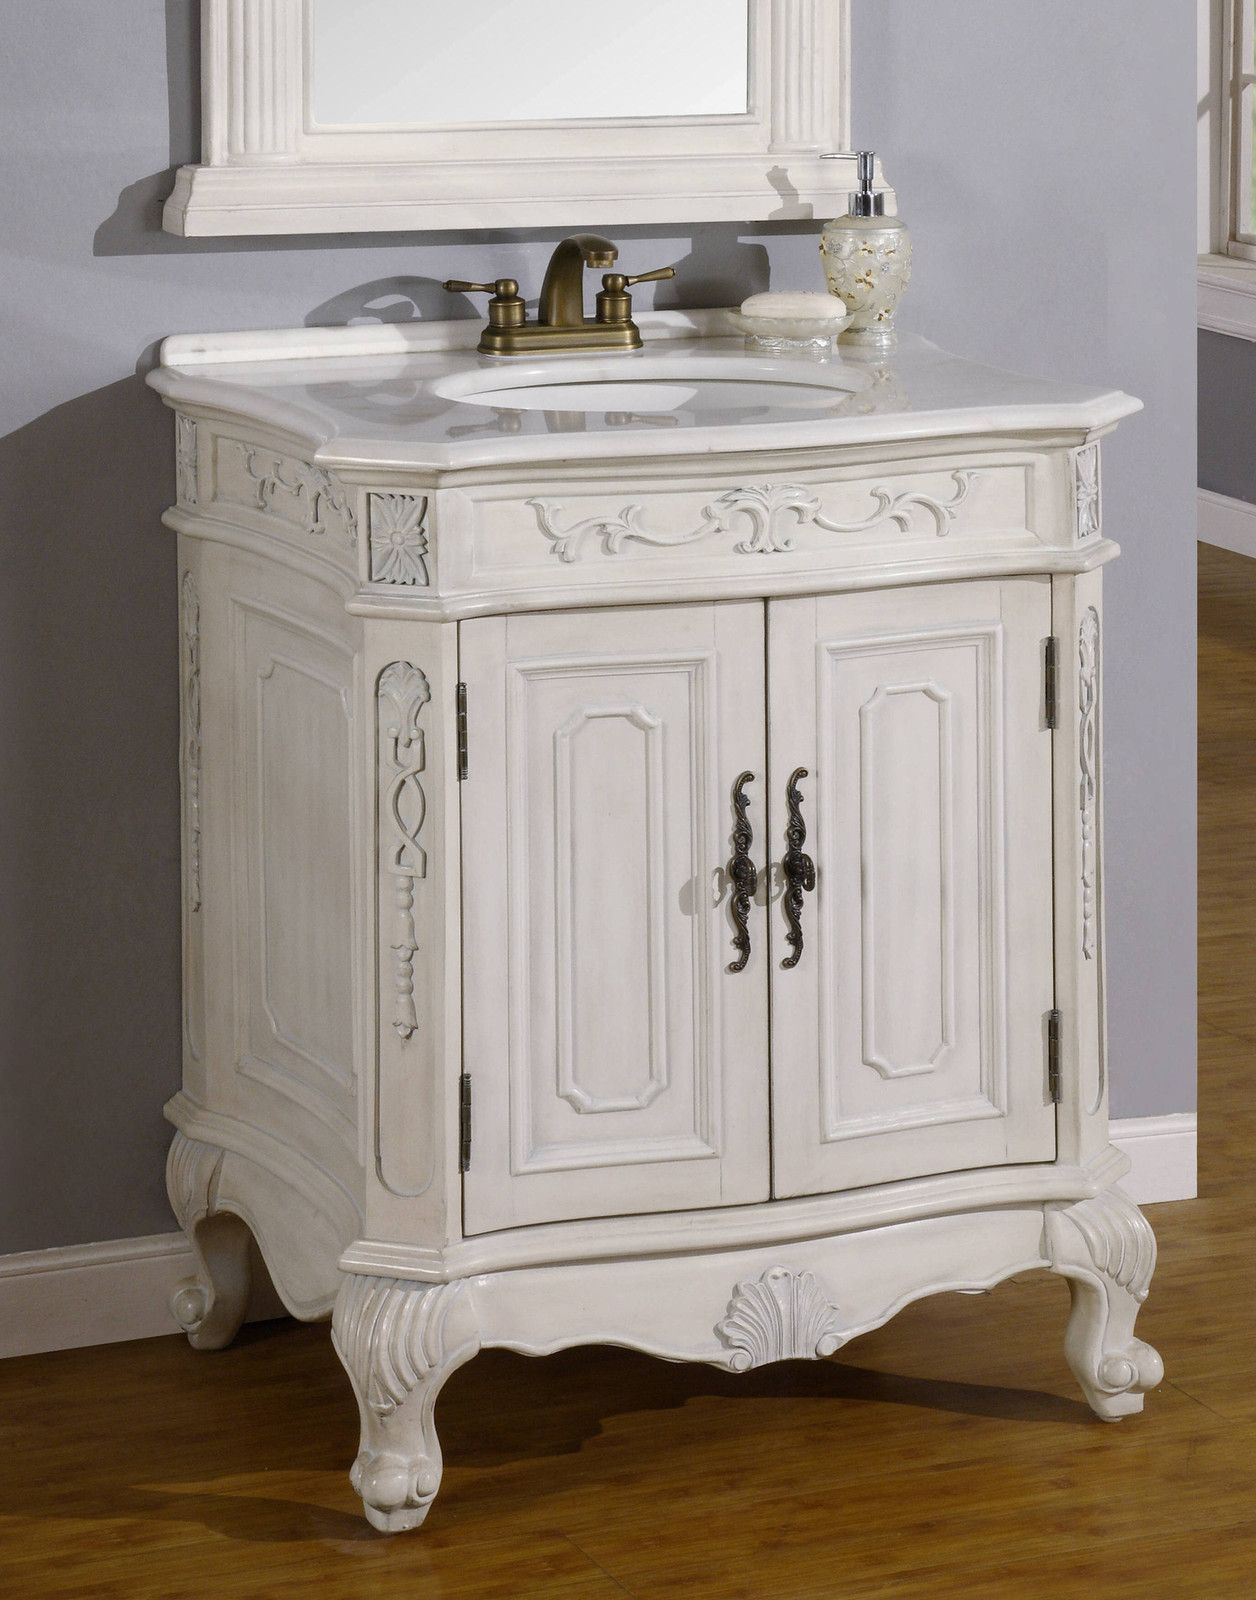 29 Single Sink Bathroom Vanity Cabinet With White Marble Top Victorian Style White Vanity Bathroom Bathroom Vanity Single Bathroom Vanity